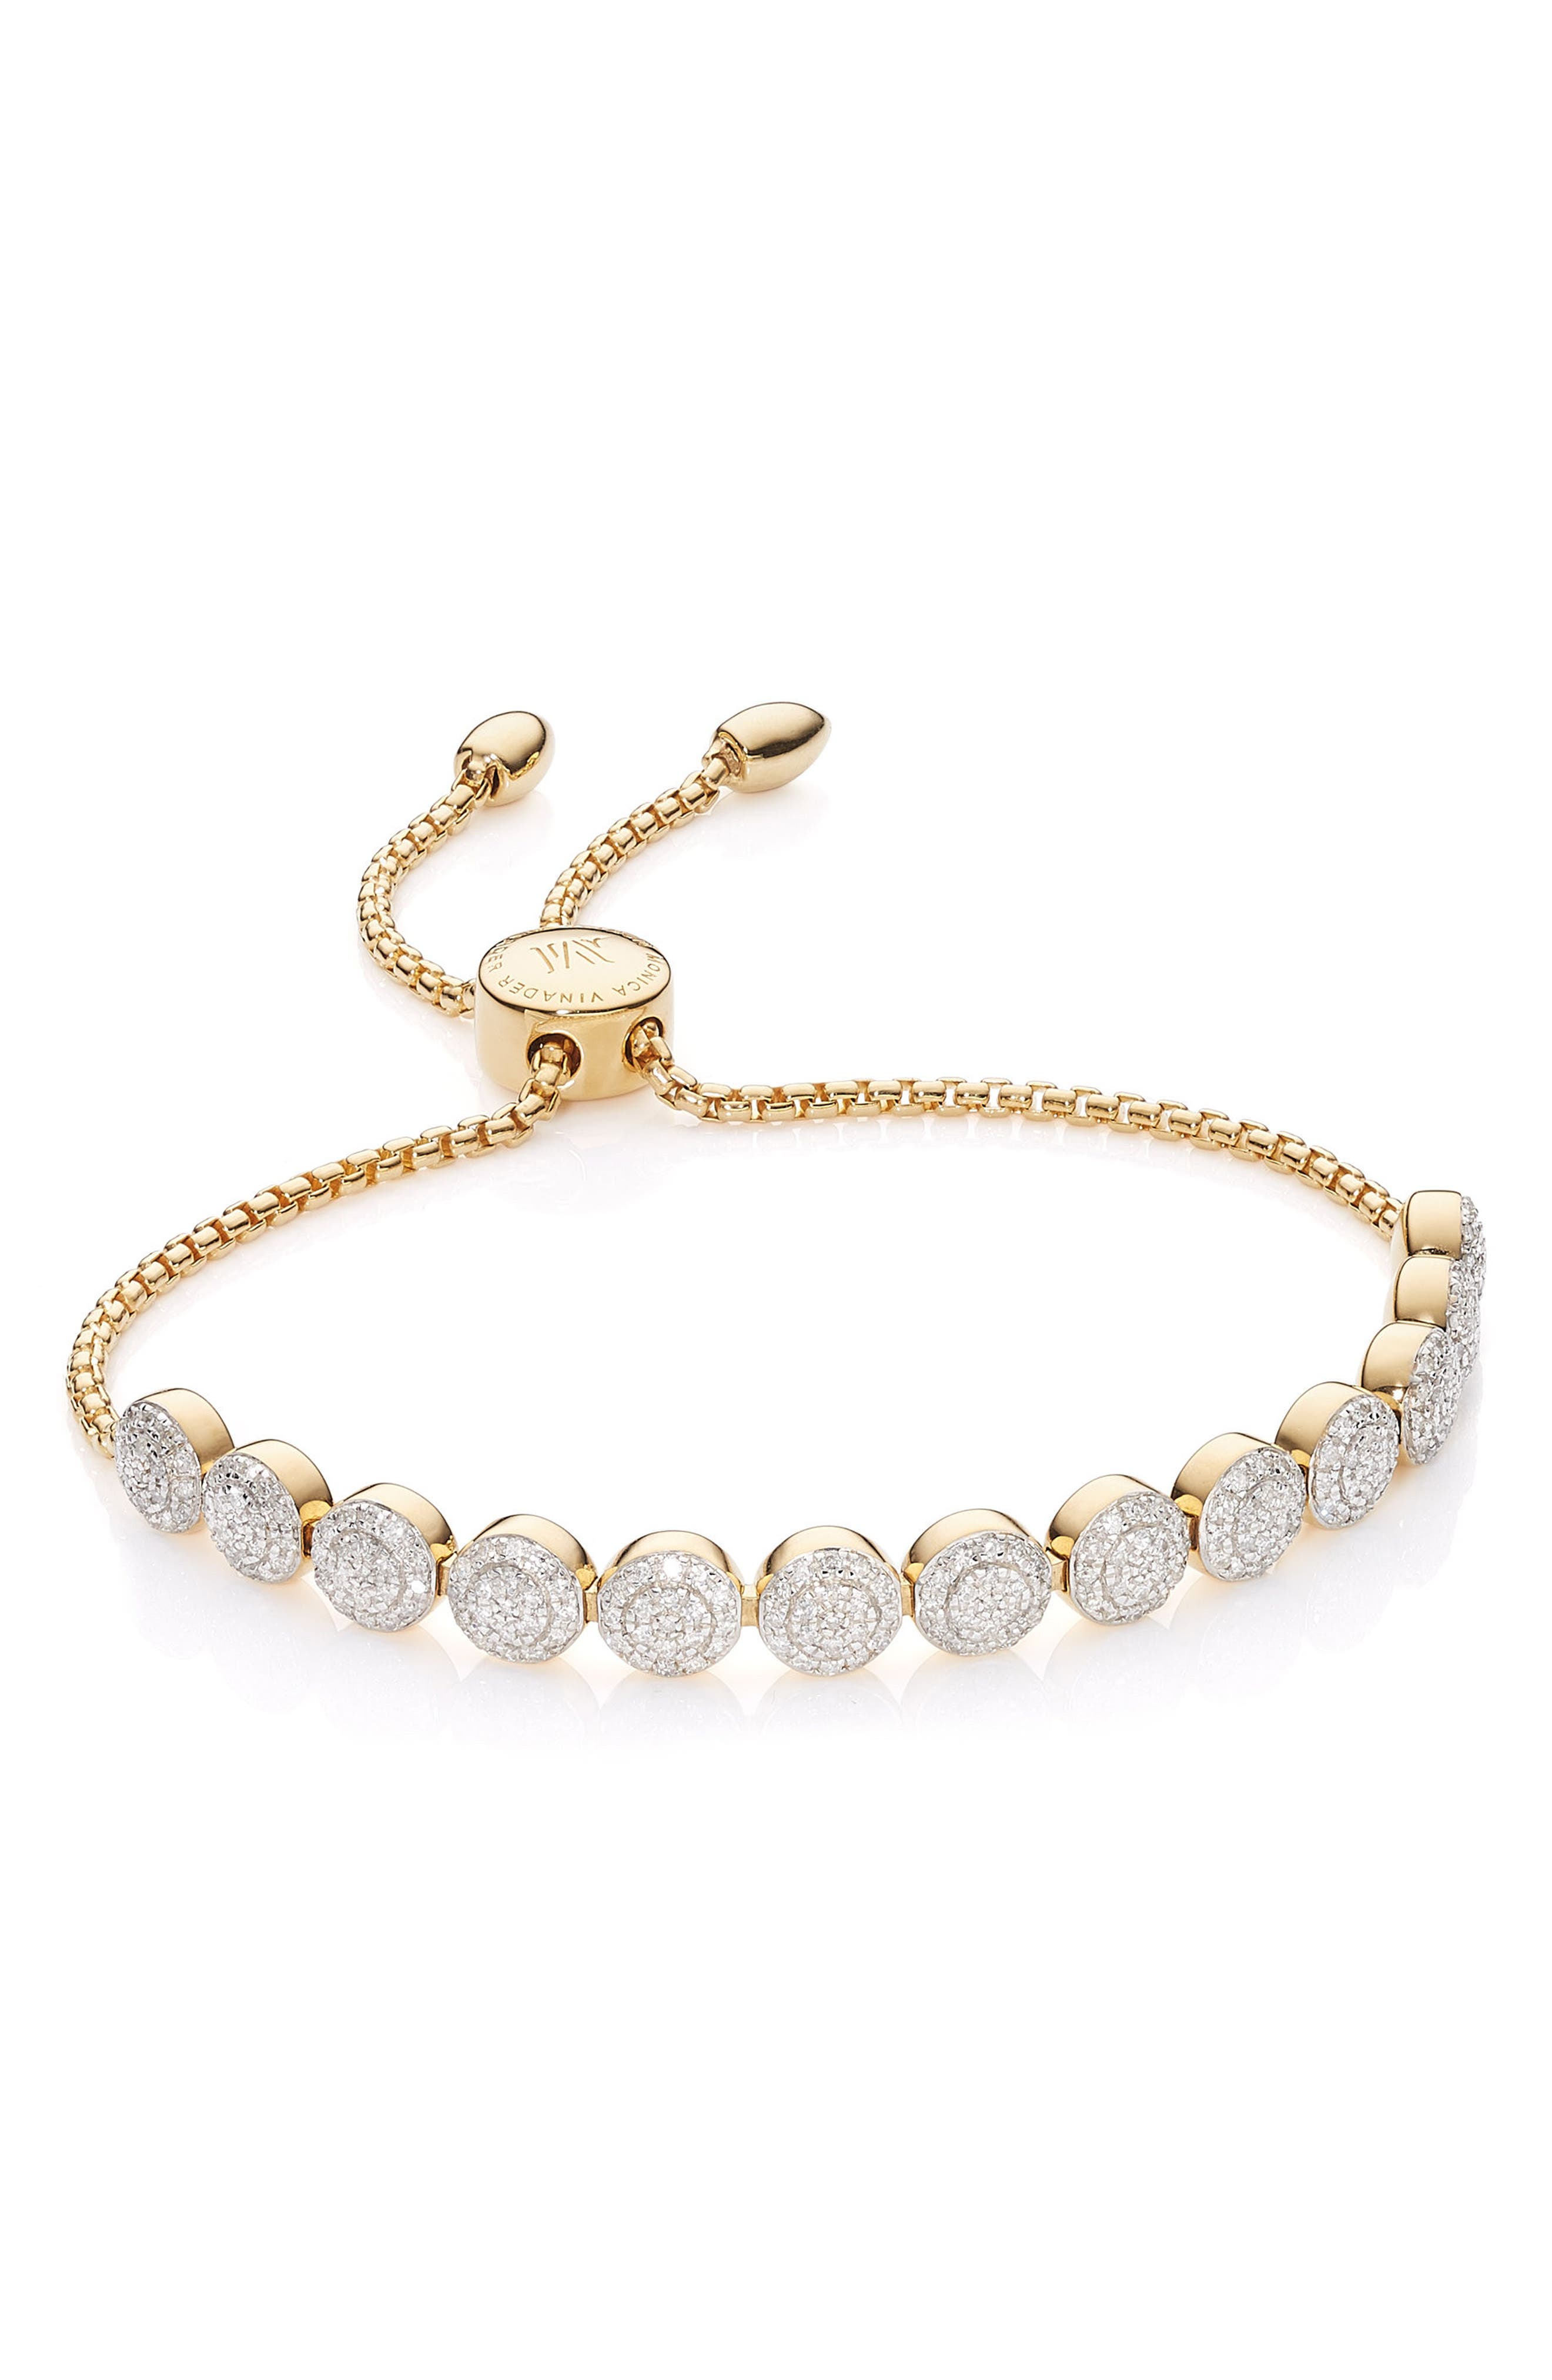 Fiji Beaded Chain Diamond Bracelet,                             Main thumbnail 1, color,                             Gold